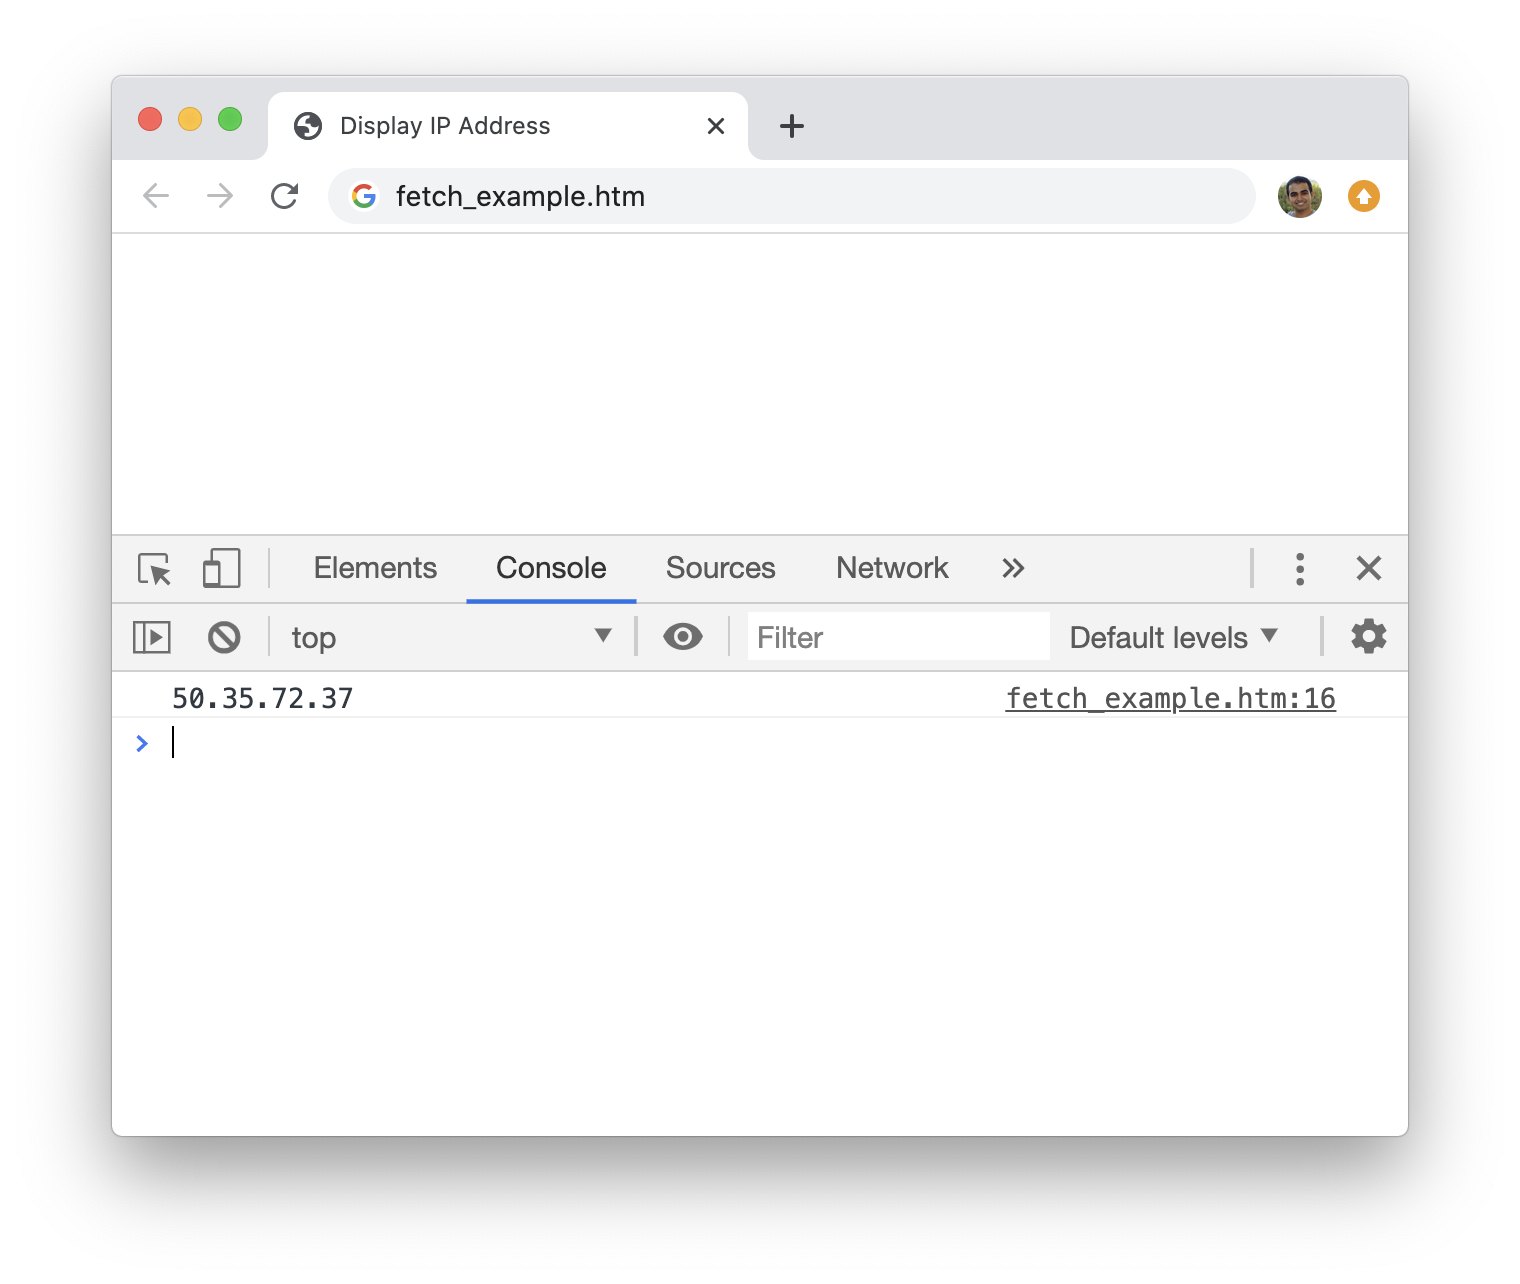 Making HTTP/Web Requests in JavaScript